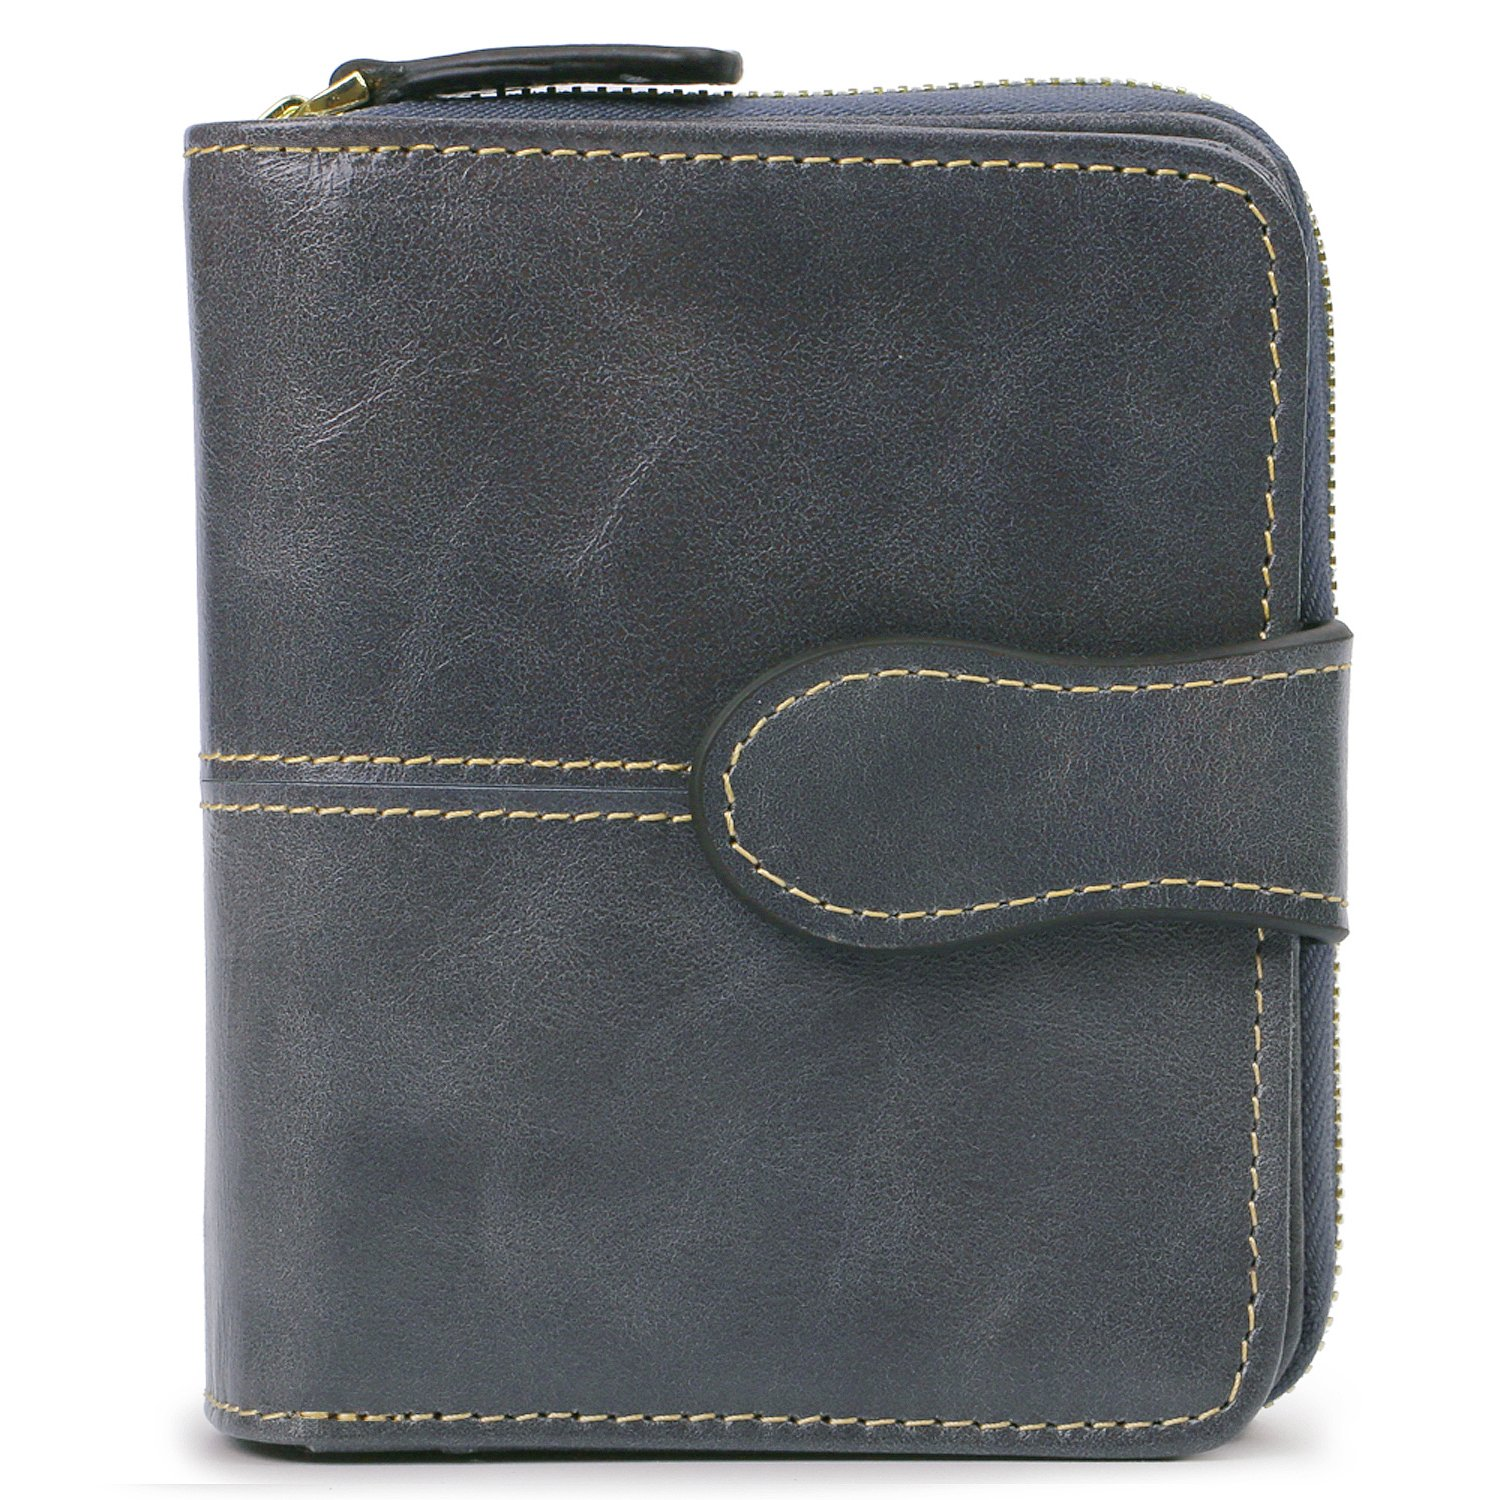 AINIMOER RFID Blocking Women's Leather Secure Spacious Small Wallet Zipper Pocket Card Case Compact Purse(Waxed Gray) by AINIMOER